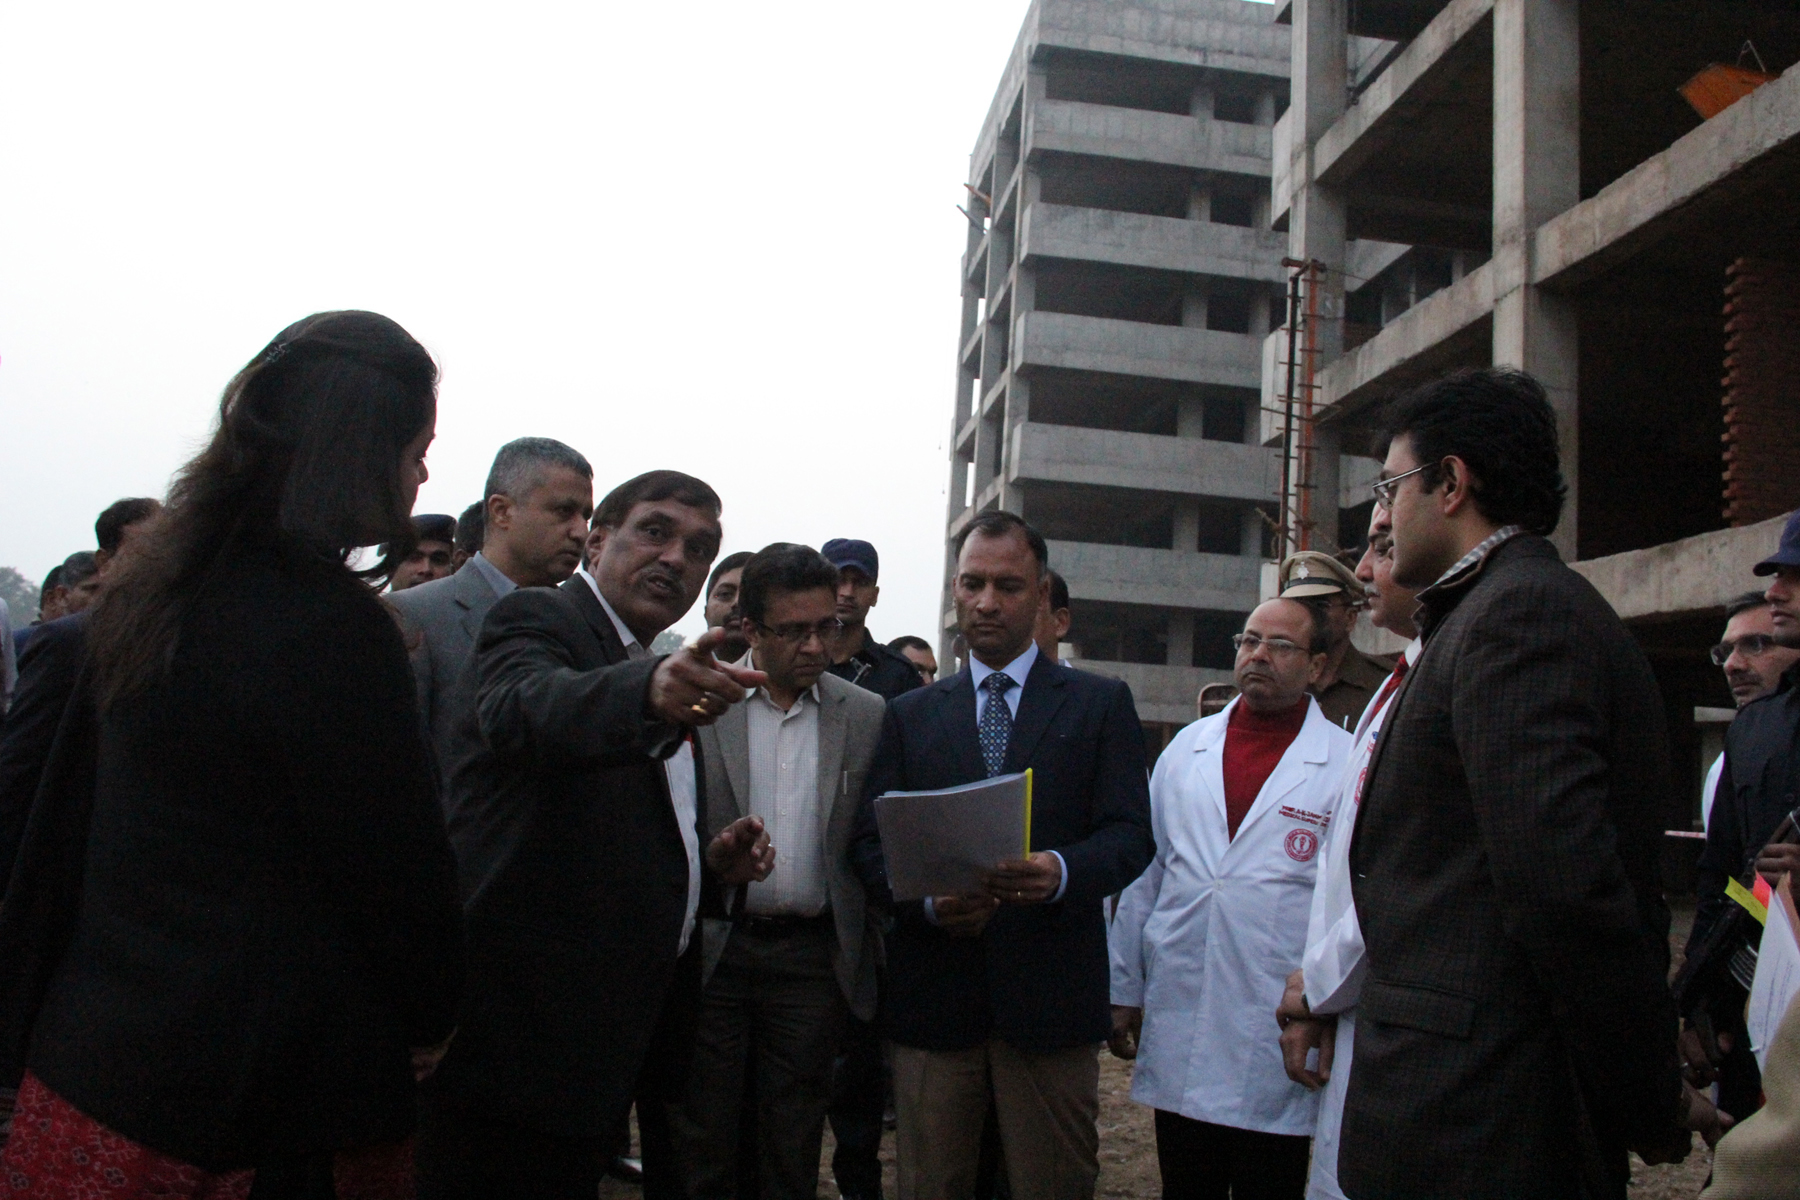 The Adviser to the Administrator, UT, Chandigarh, Mr. Vijay Dev alongwith senior officers of Chandigarh Administration visiting at GMCH, Sector-32,  Chandigarh on Tuesday, January 27, 2015.